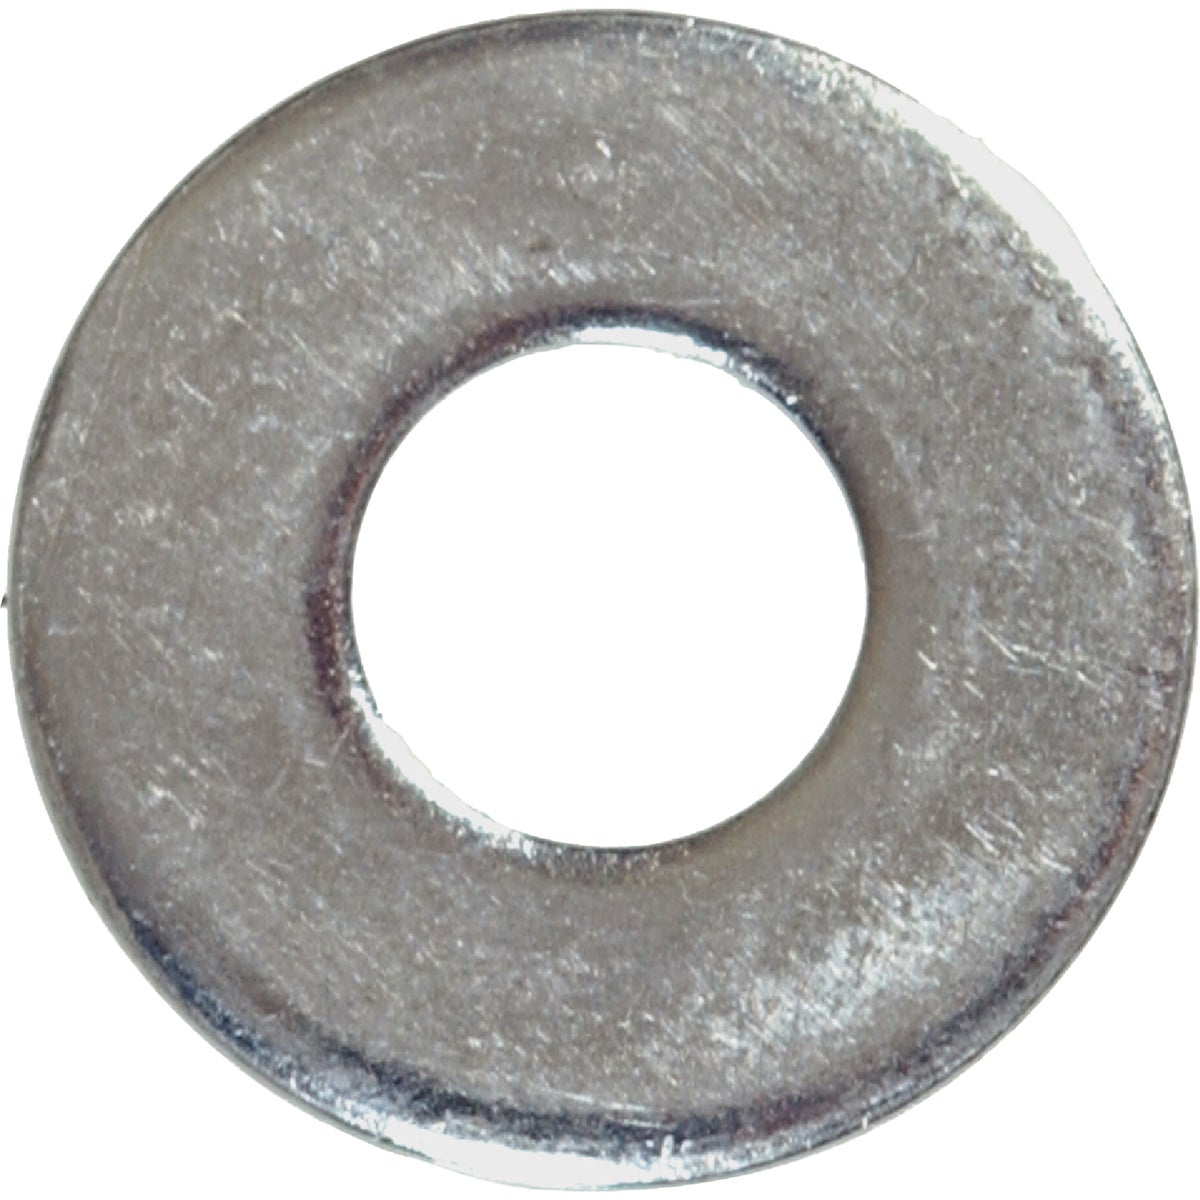 "10PC 1"" USS FLAT WASHER - 270079 by Hillman Fastener"